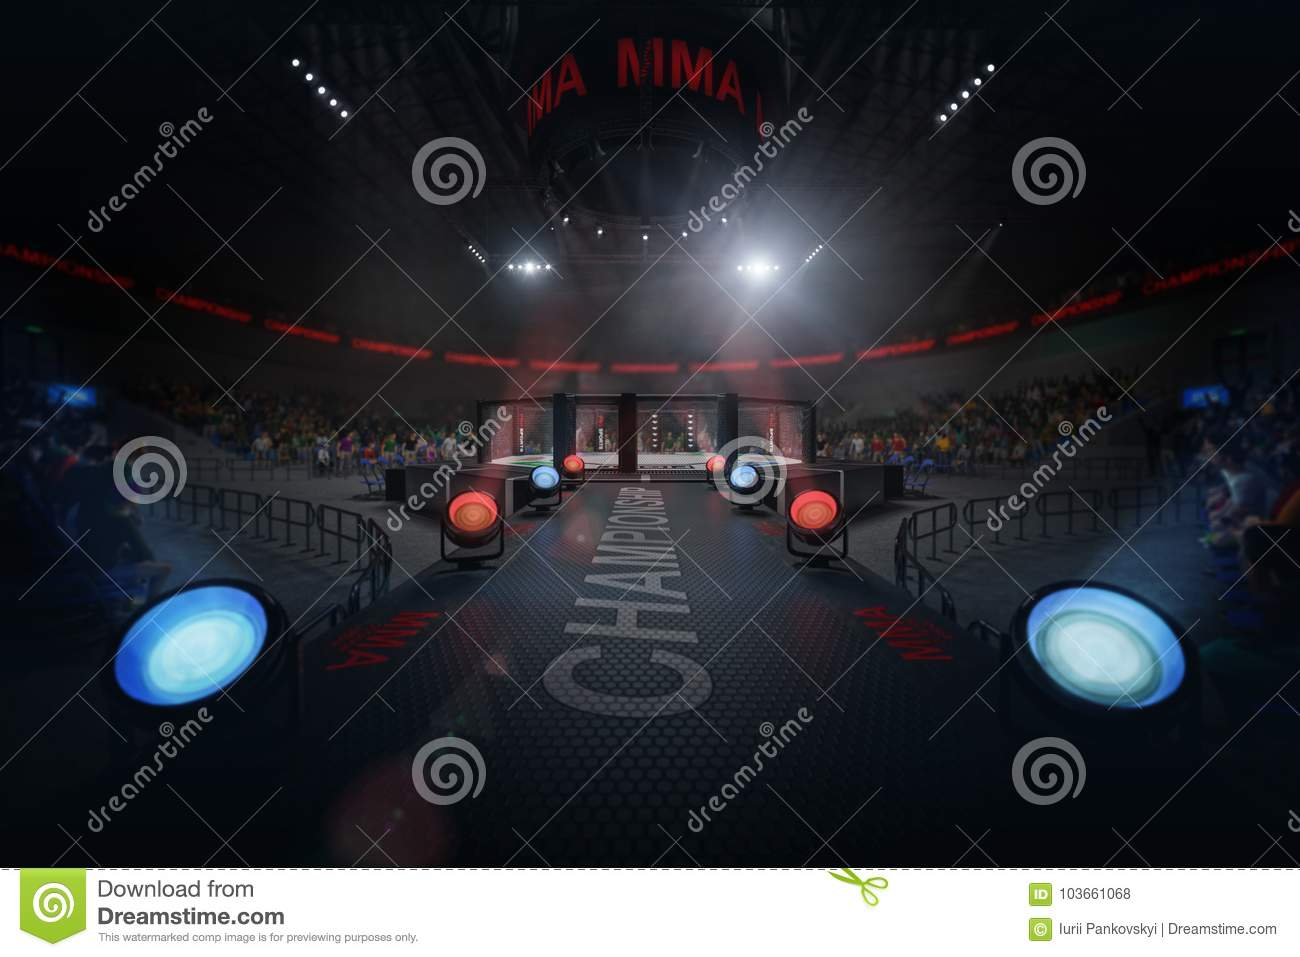 Way to mma arena on crowded stadium under lights